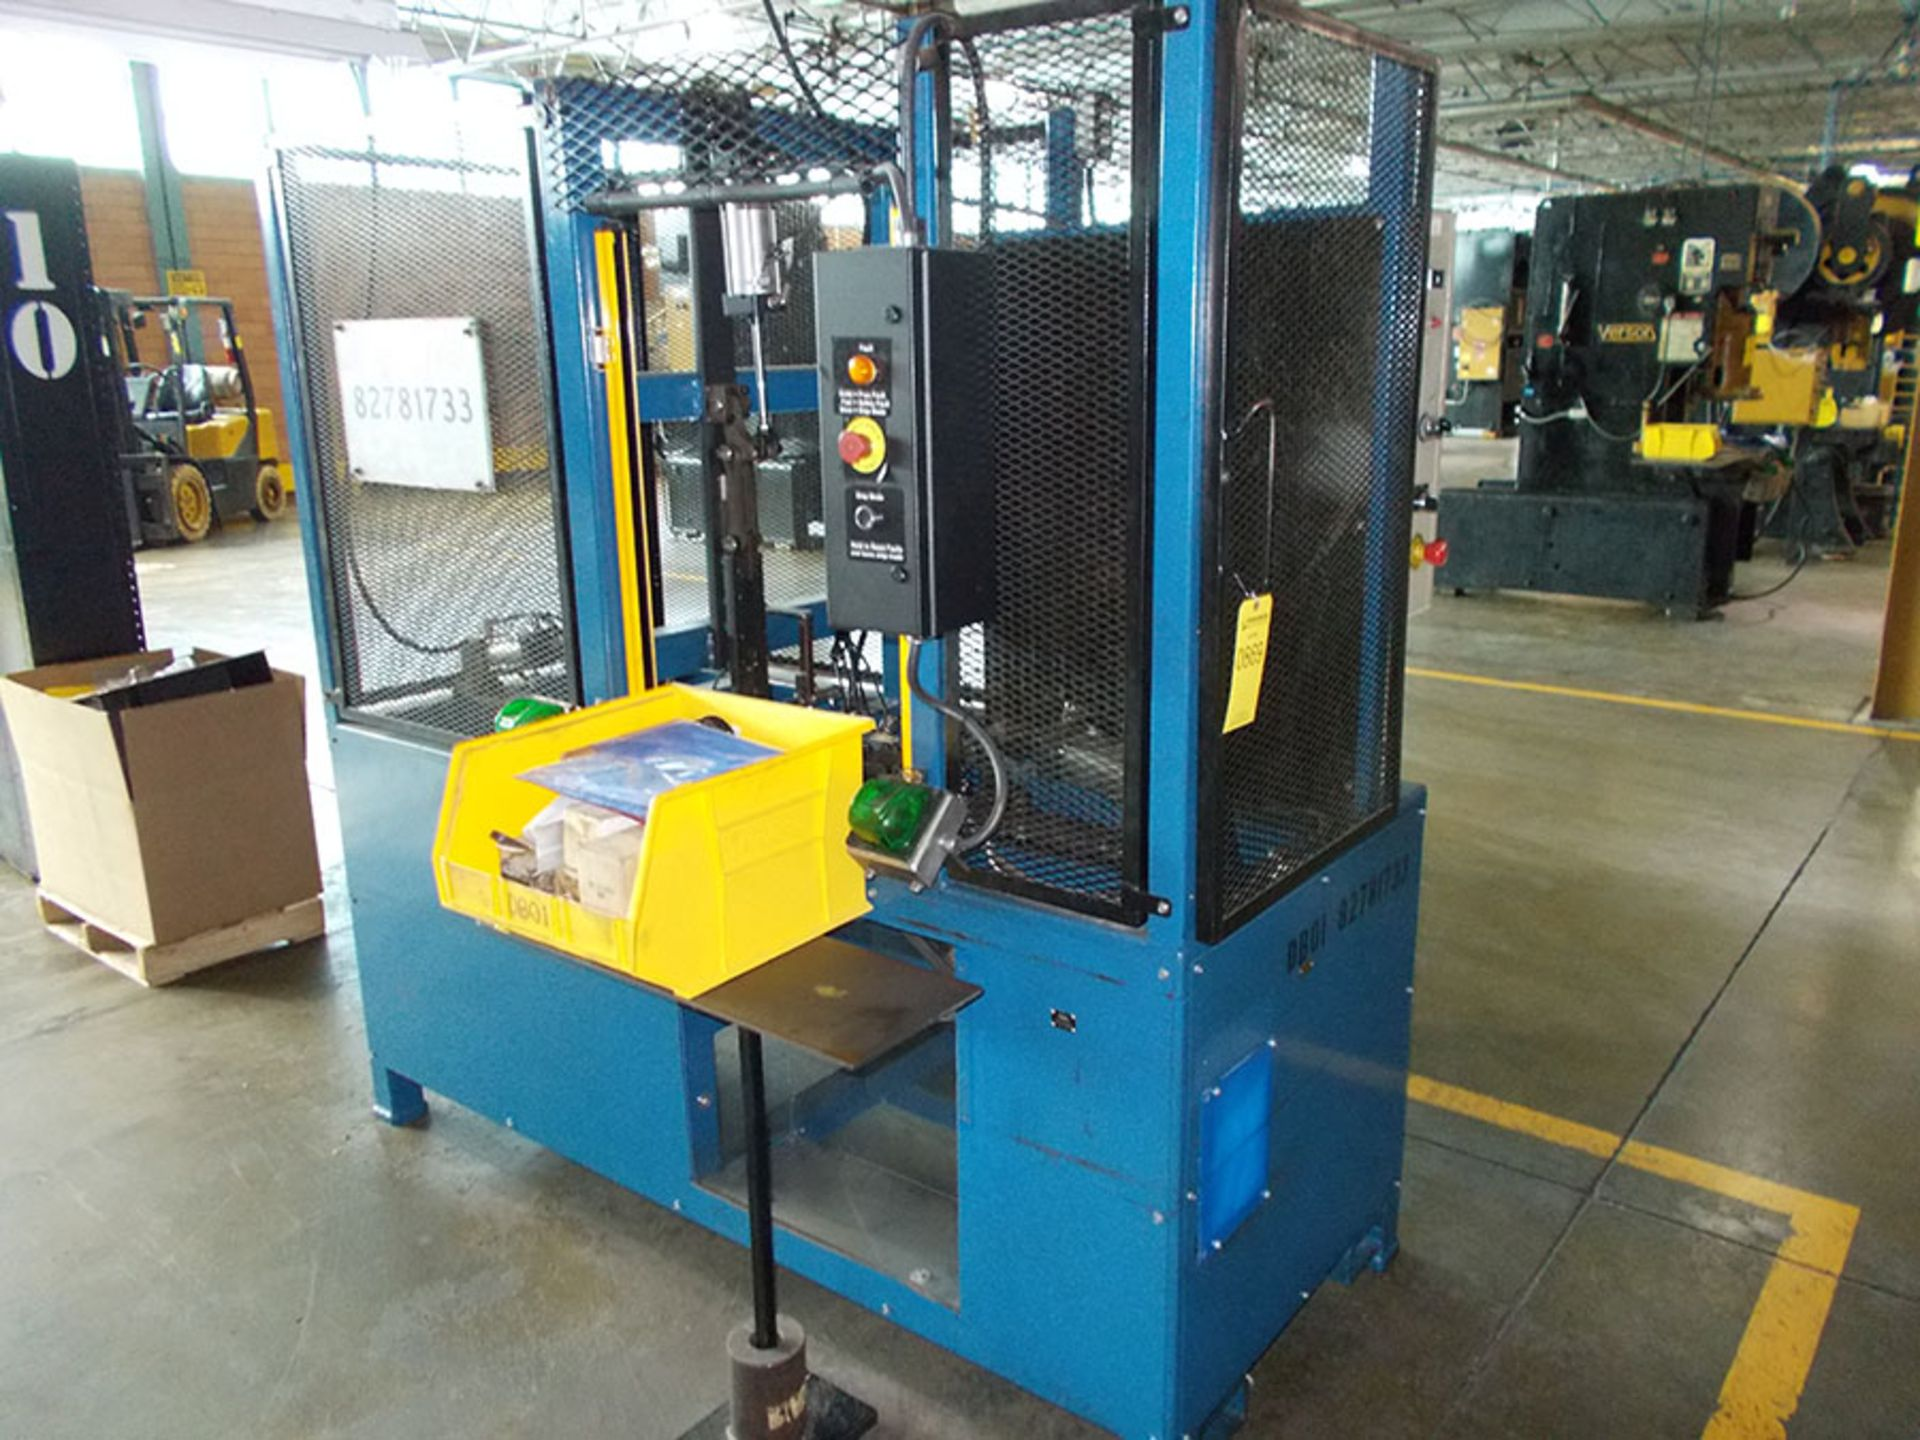 Lot 869 - INDUSTRIAL TOOL & DIE WIRE FORMING MACHINE; NO. 82781733, 120V, WITH PLASTIC TOTE OF SPARE PARTS